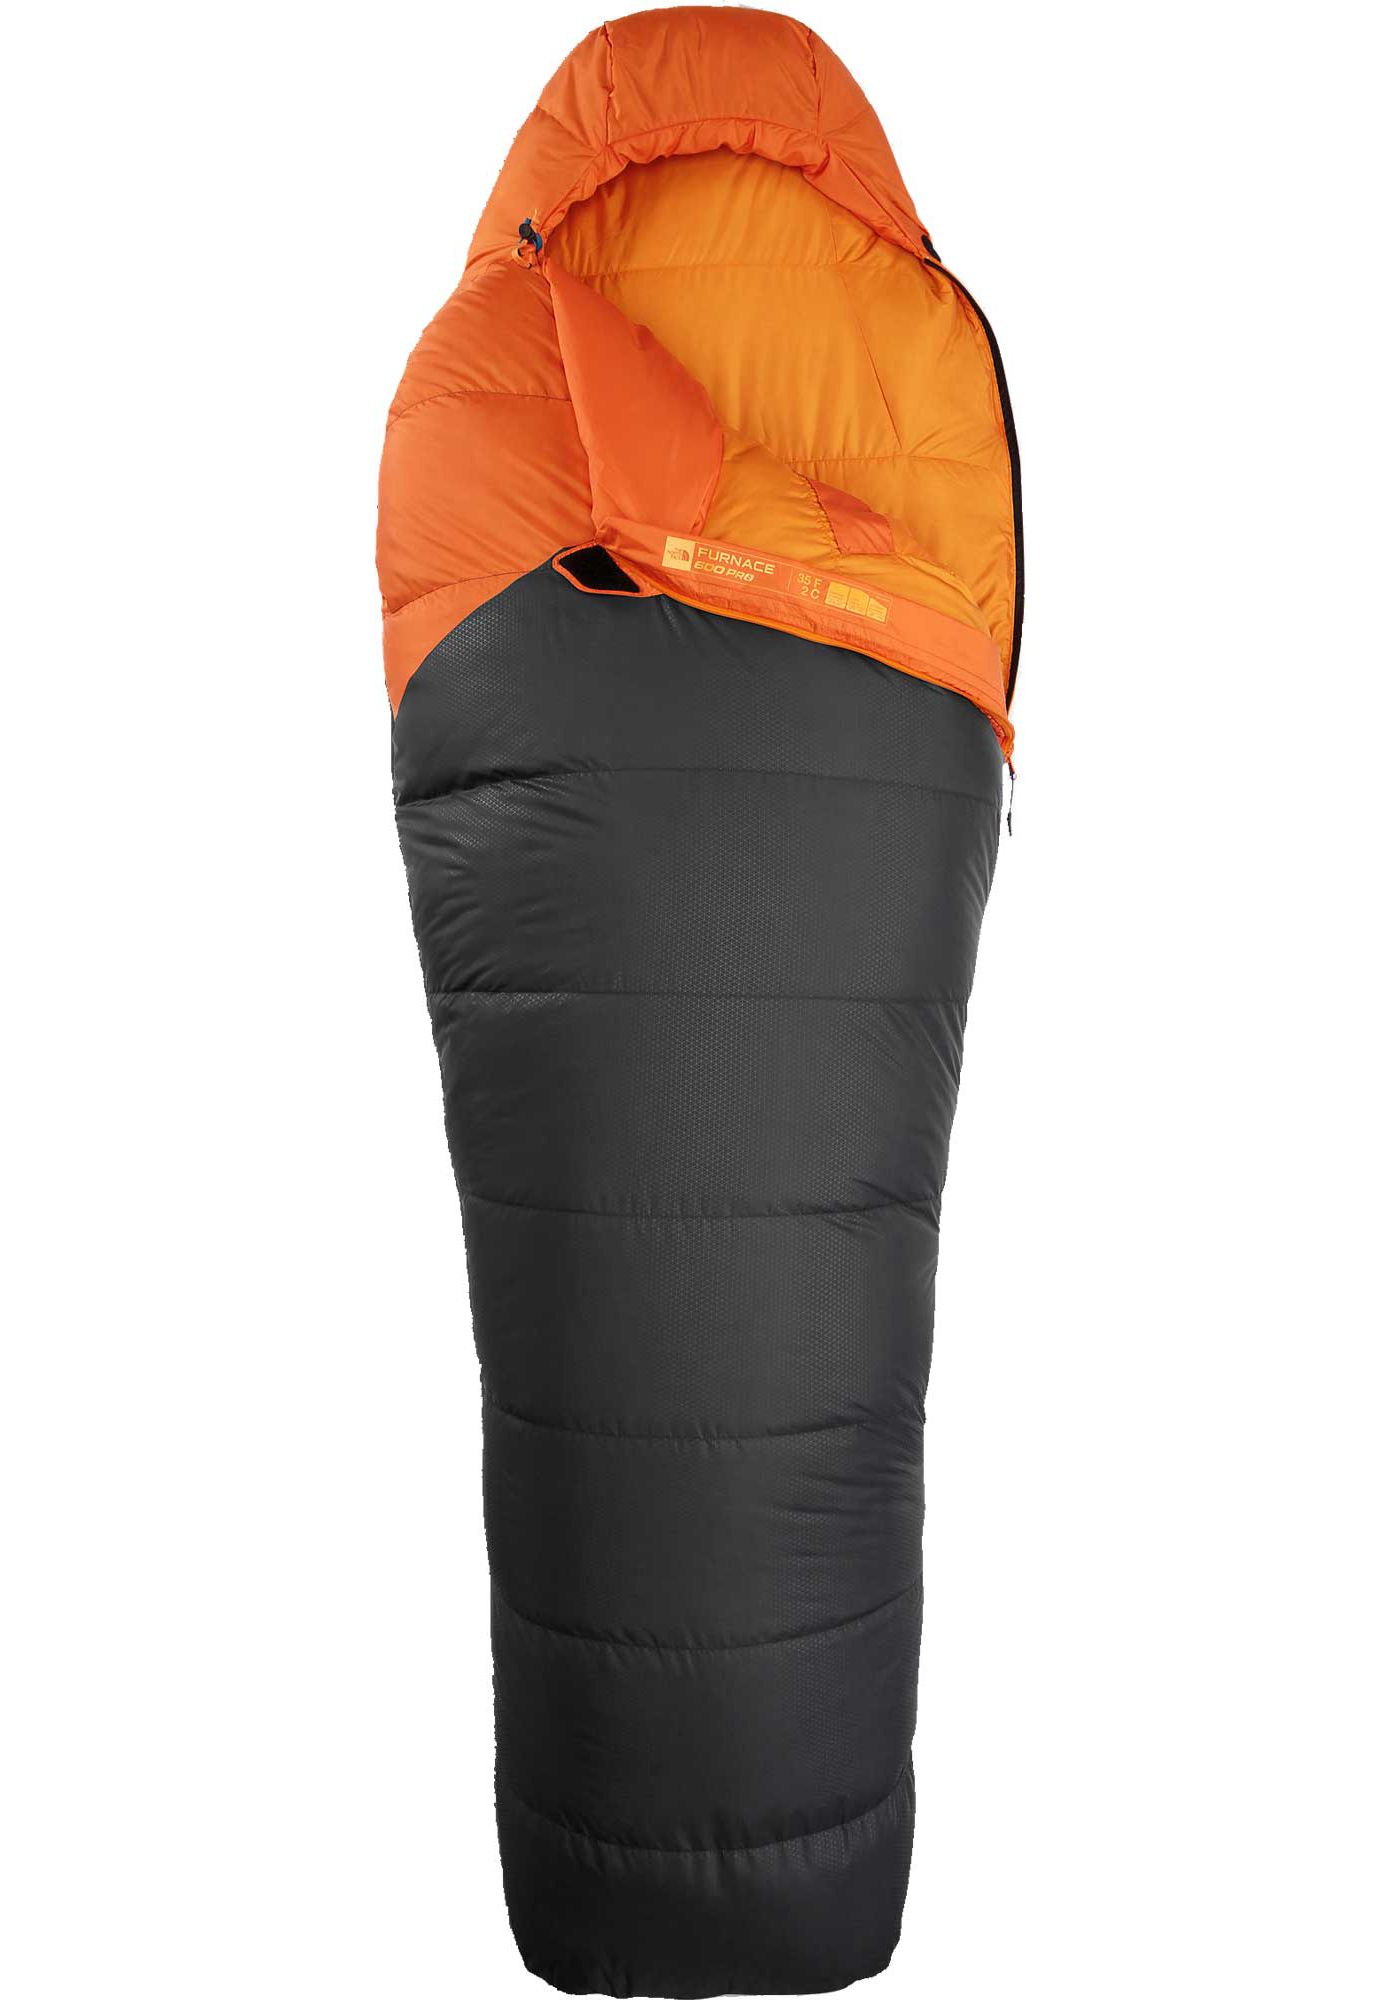 North Face Furnace 35° Sleeping Bag